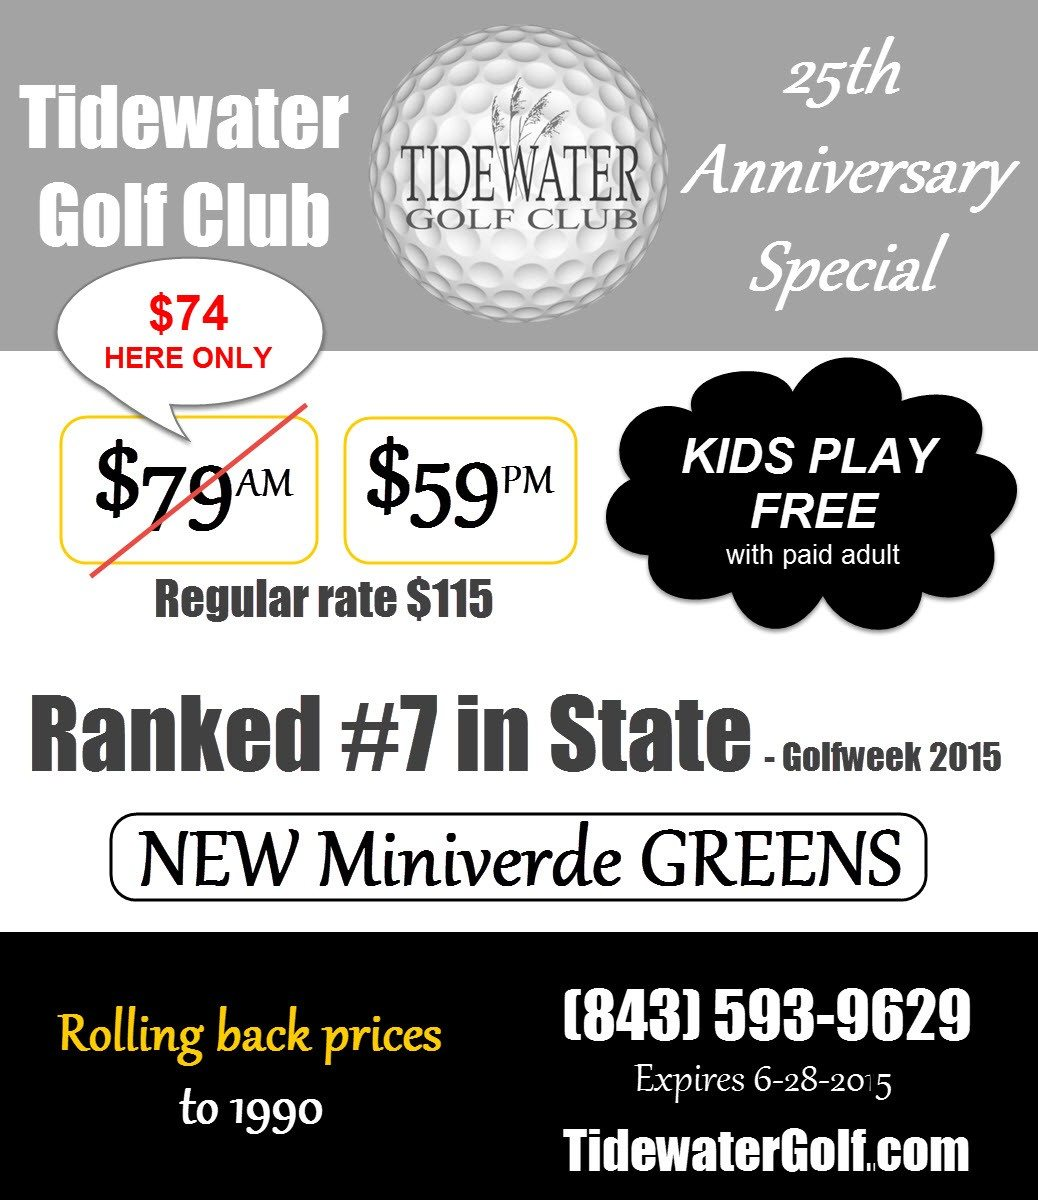 Summer golf special-25th anniversary